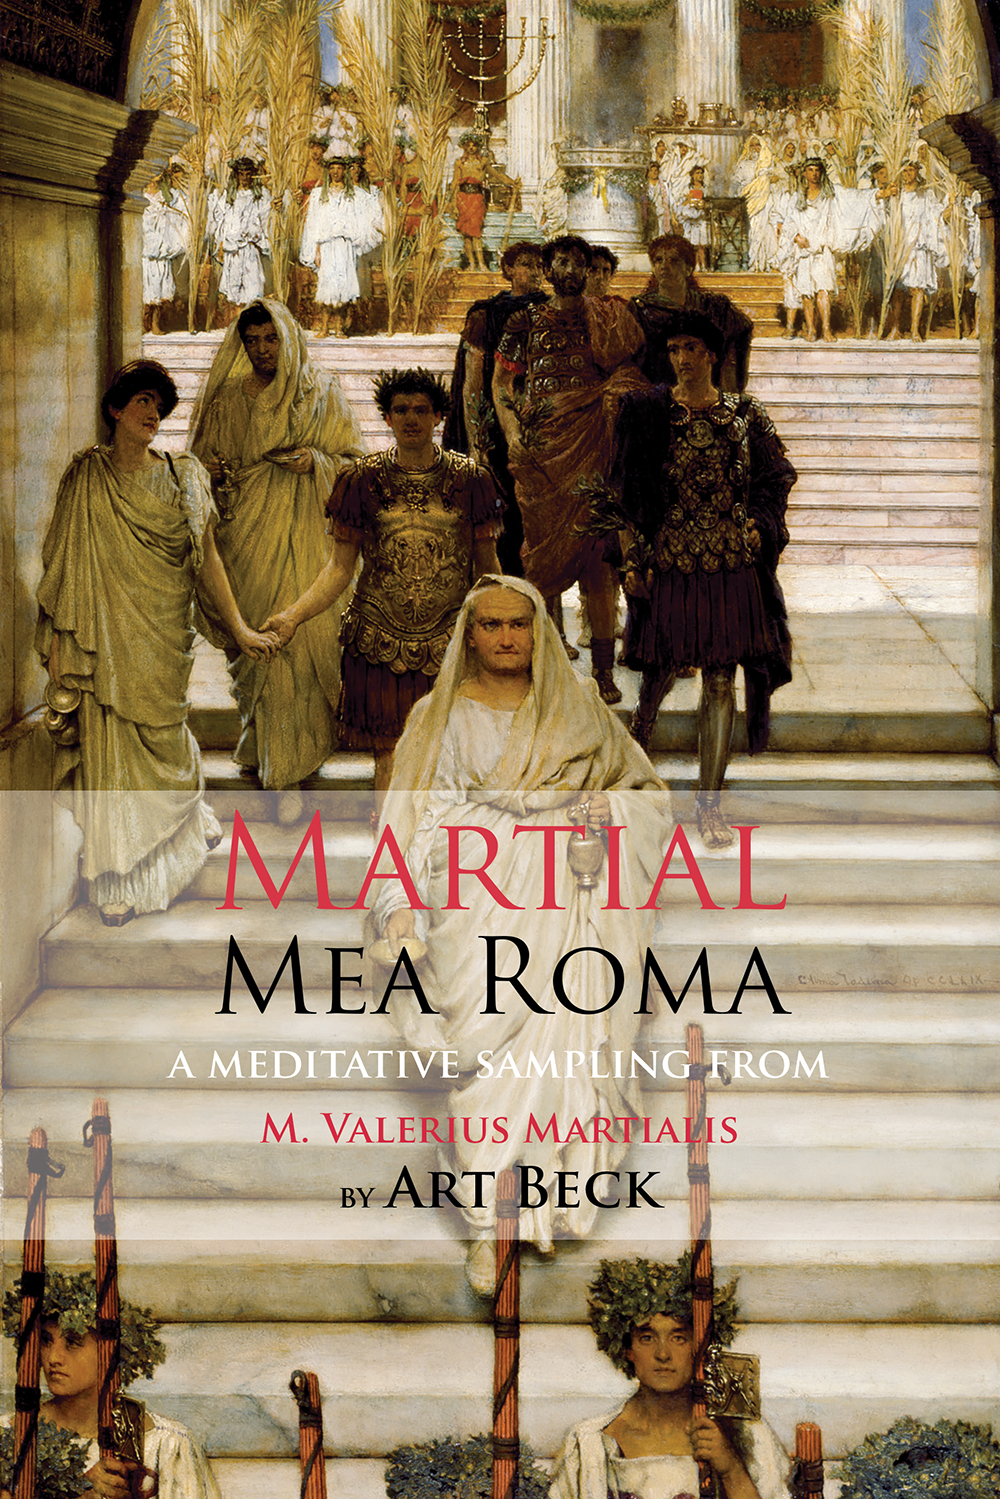 Mea Roma — A Meditative Sampling from M. Valerius Martialis (Shearsman Books, 2019) By M. Valerius Martialis (Martial), tr. Art Beck